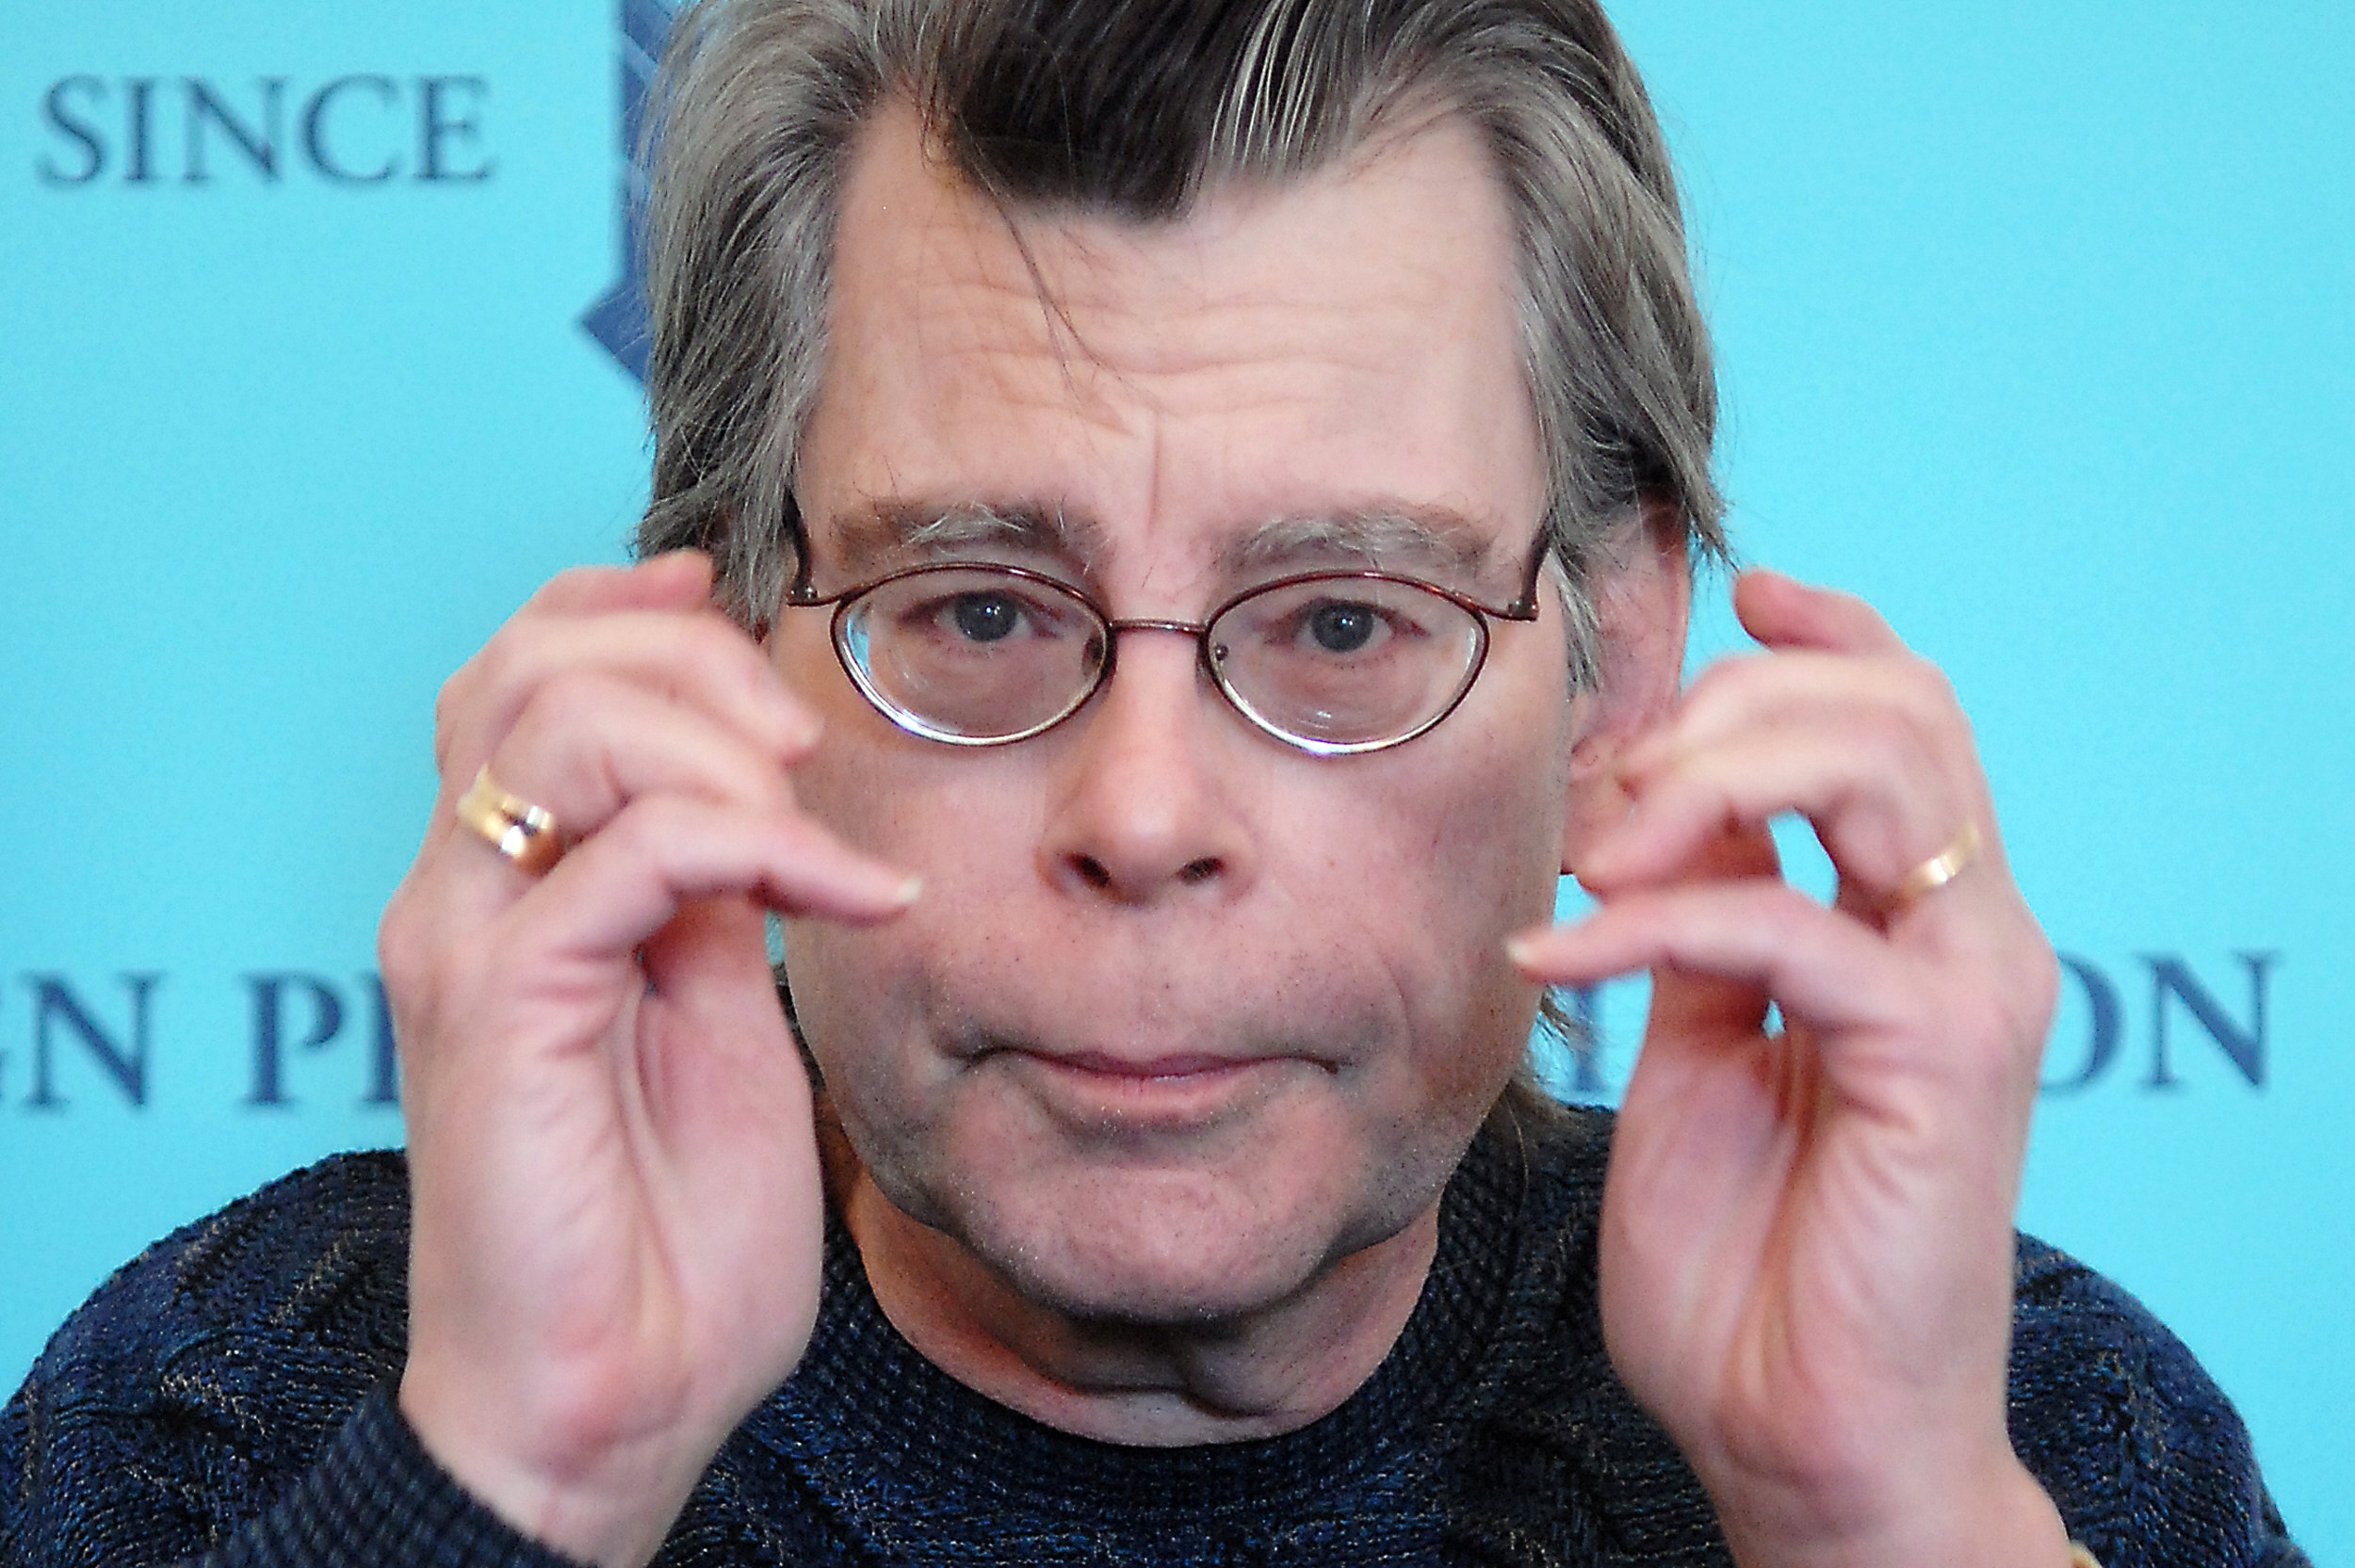 Stephen King holding his hands up near his face